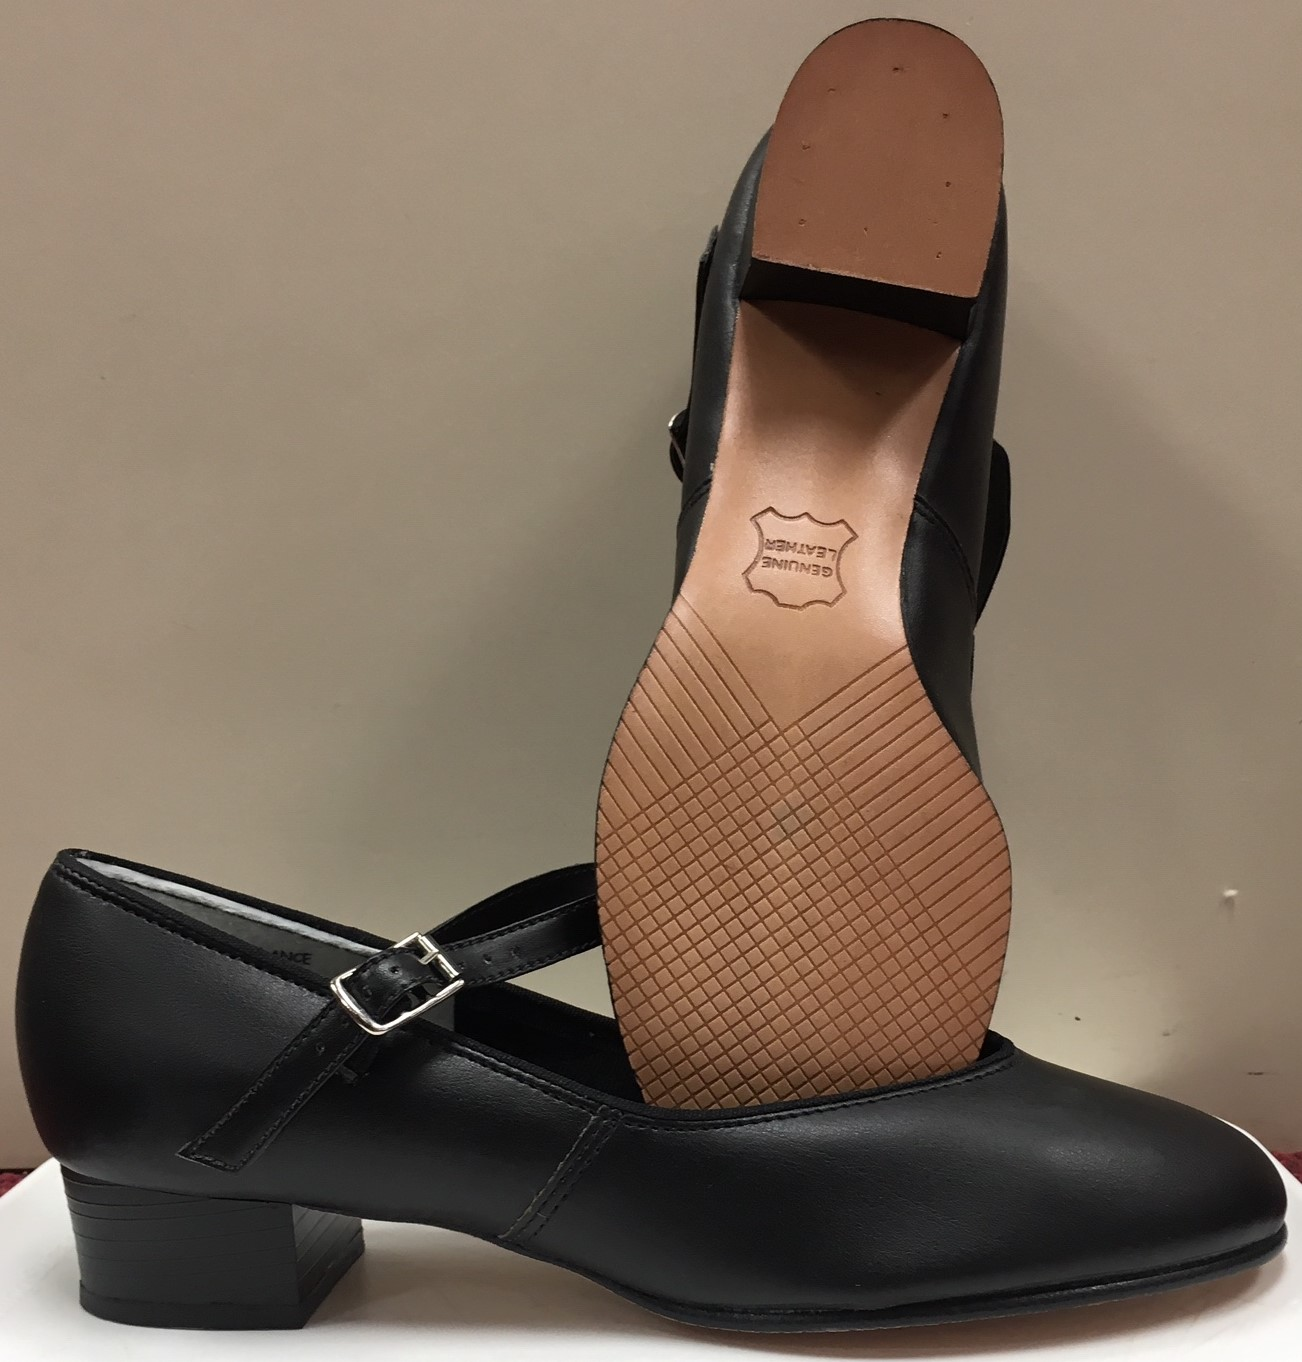 Danshuz Women's Man Made Upper Leather Sole with Buckle Strap Character Shoes